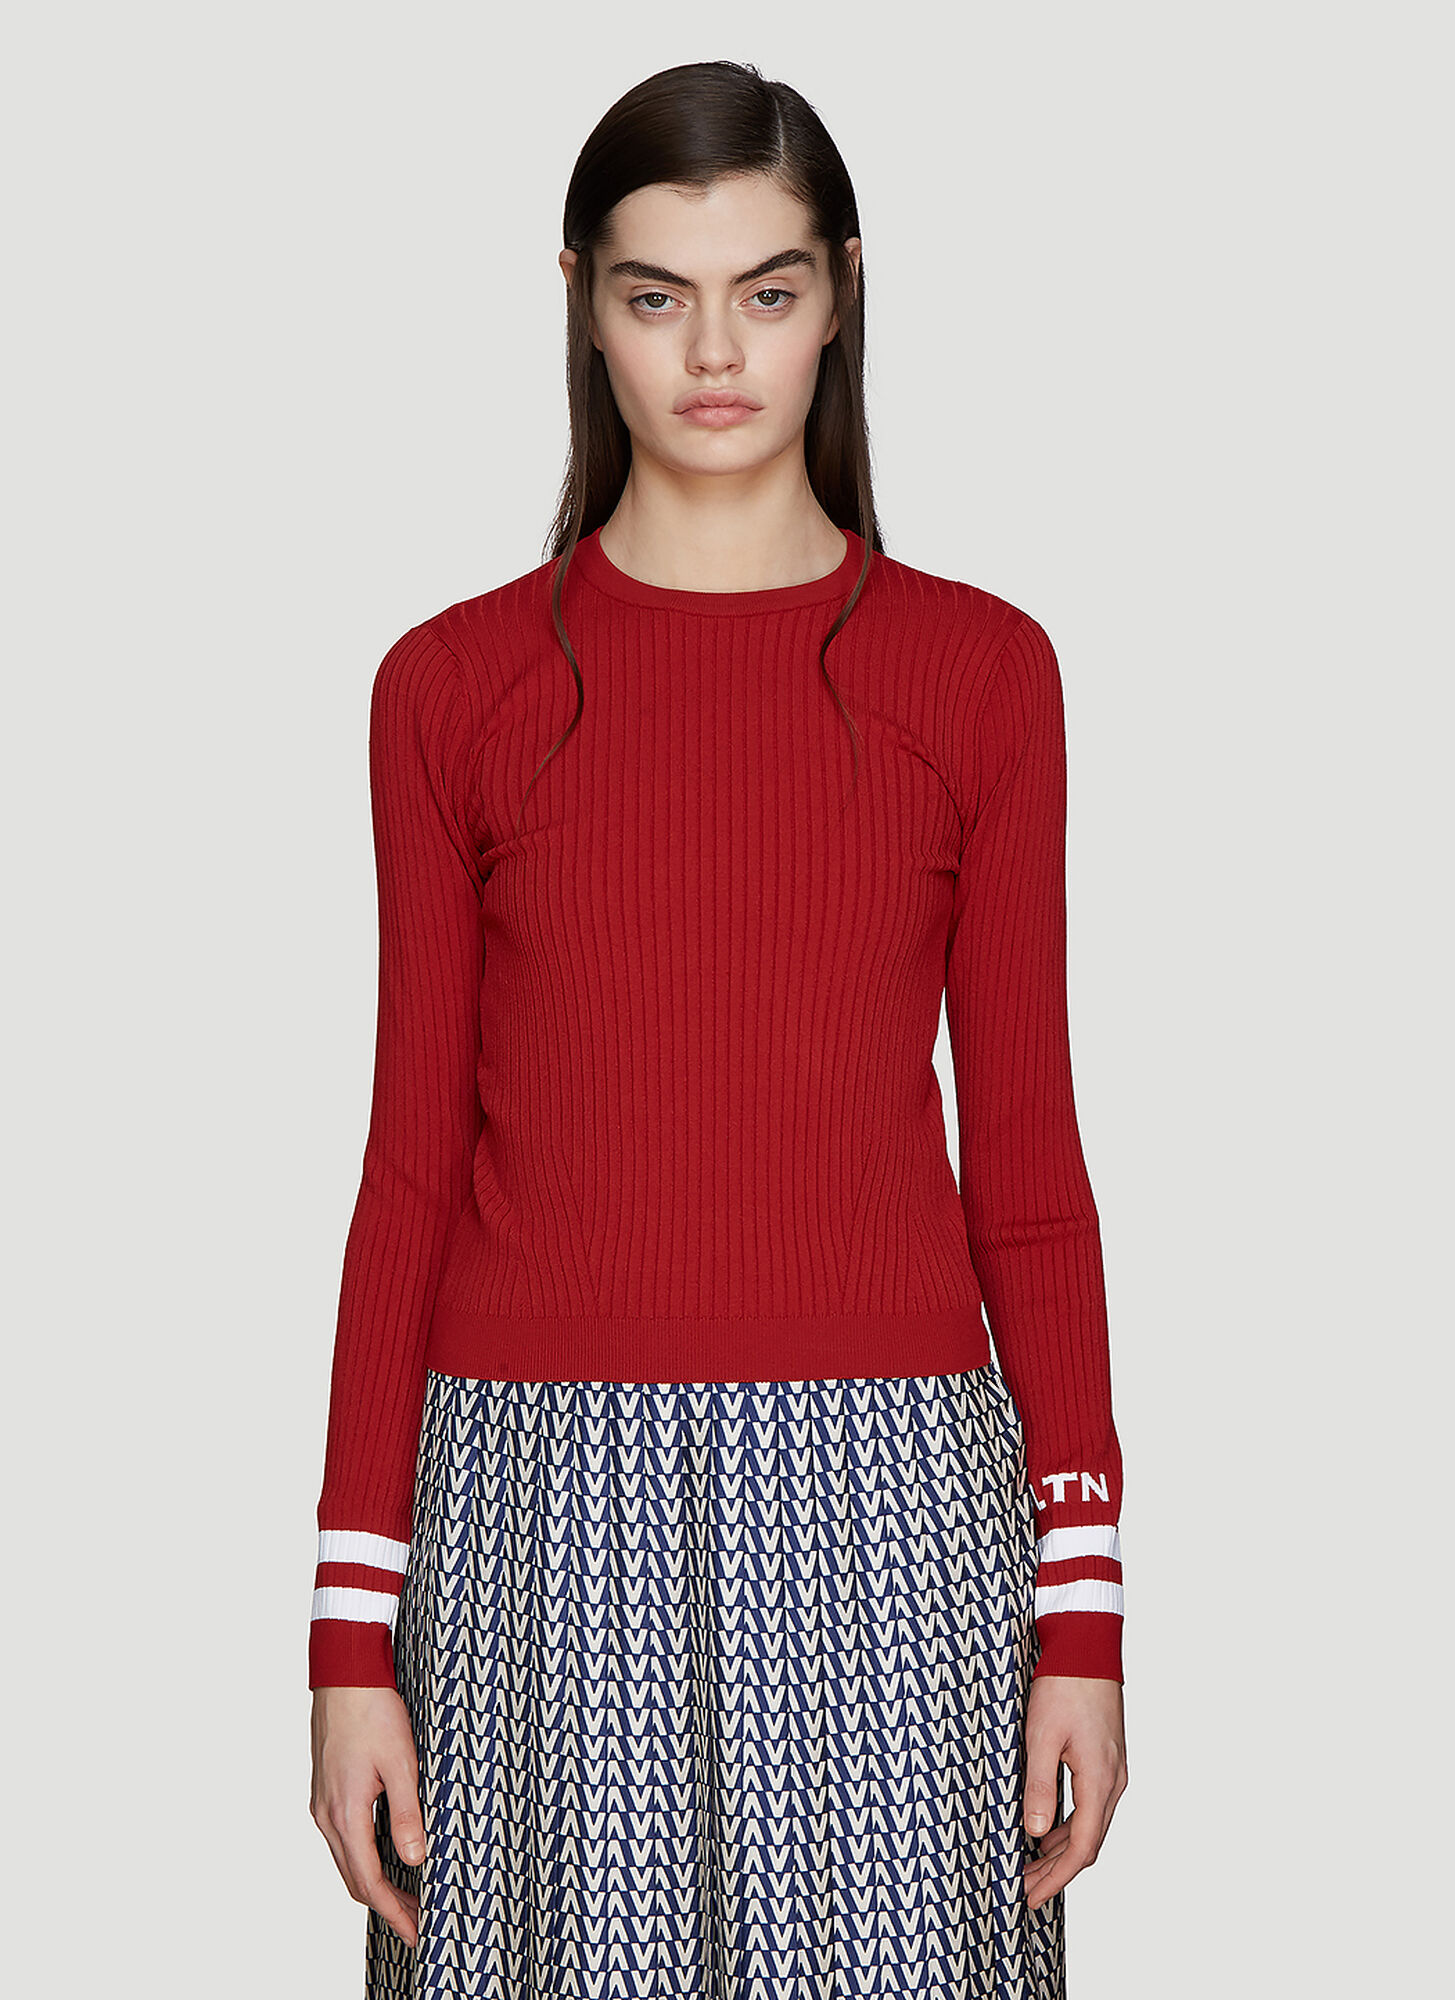 Valentino Jacquard Ribbed Knit Top in Red